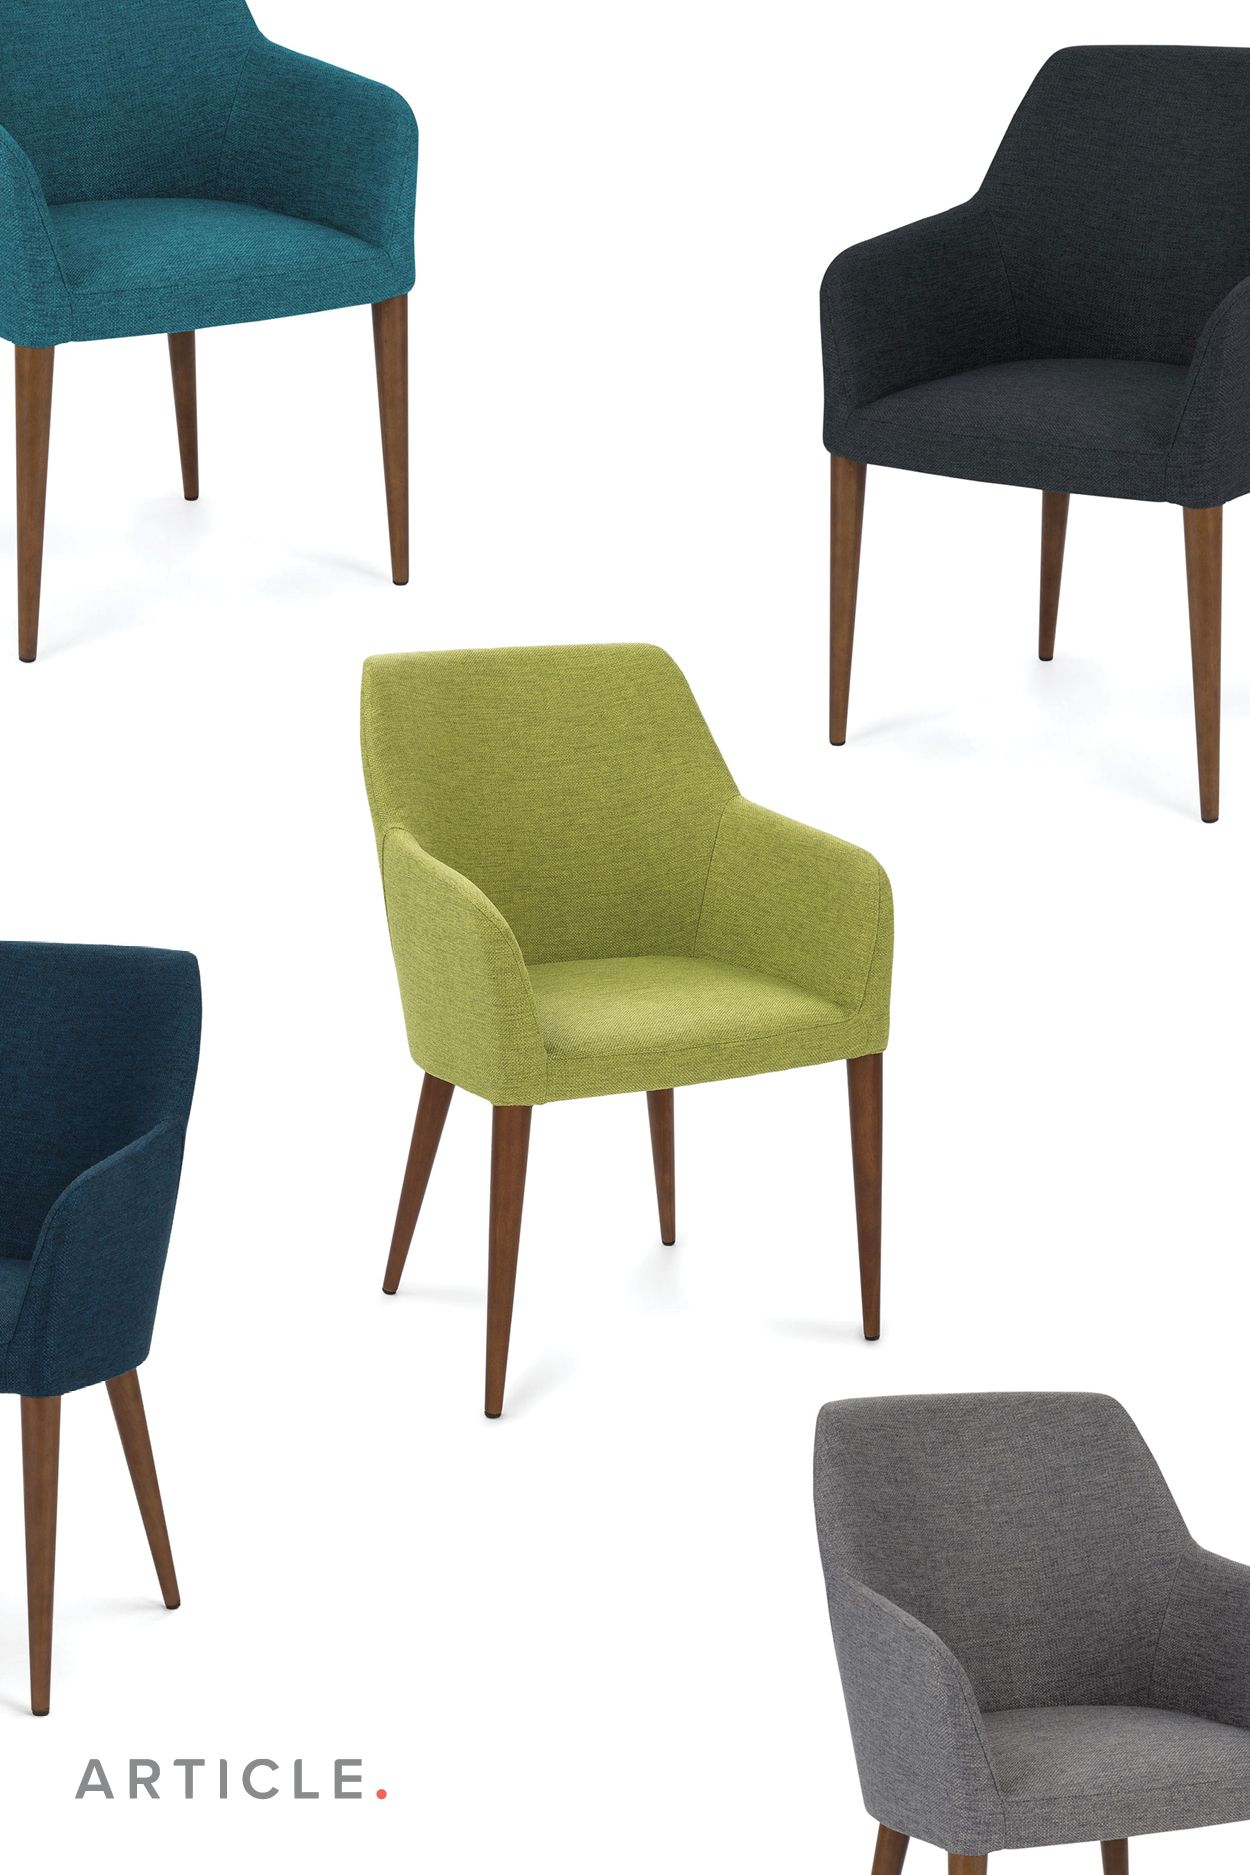 Commercial Dining Room Chairs Simple Turquoise Dining Chair  Solid Wood Legs  Article Feast Modern 2018